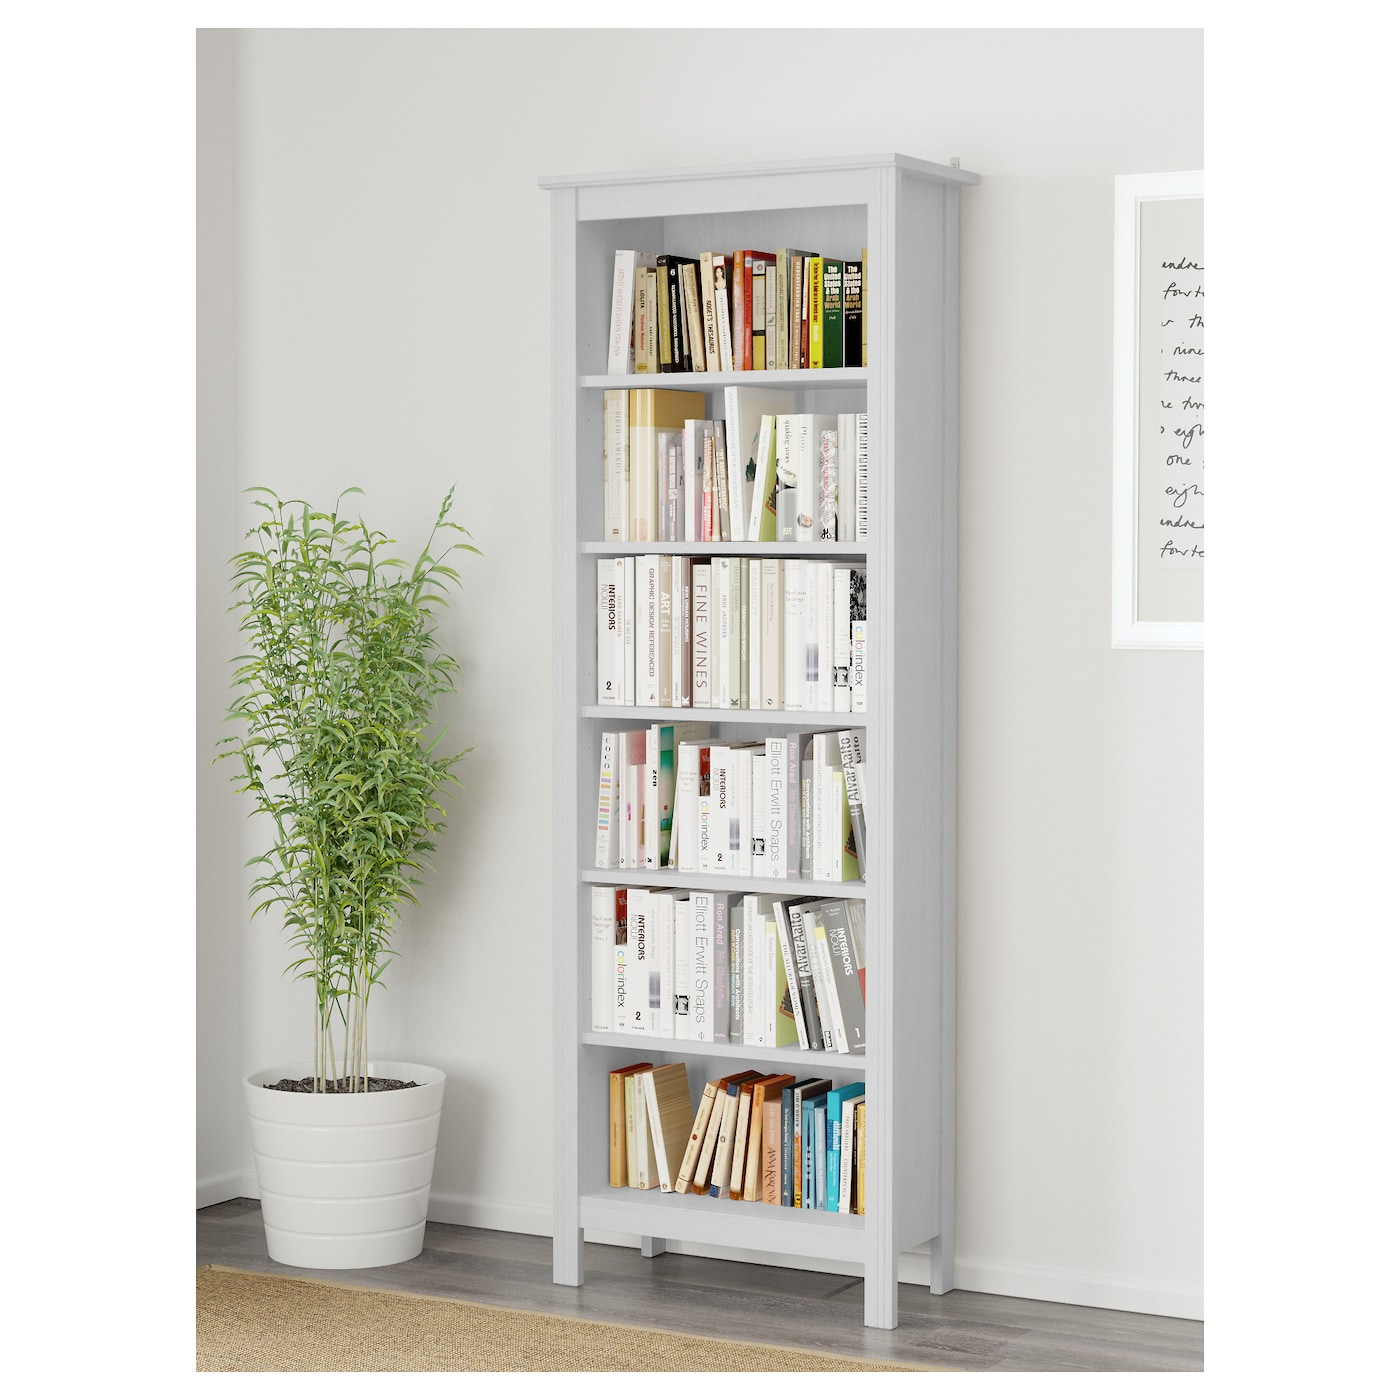 brusali bookcase white 67x190 cm ikea. Black Bedroom Furniture Sets. Home Design Ideas